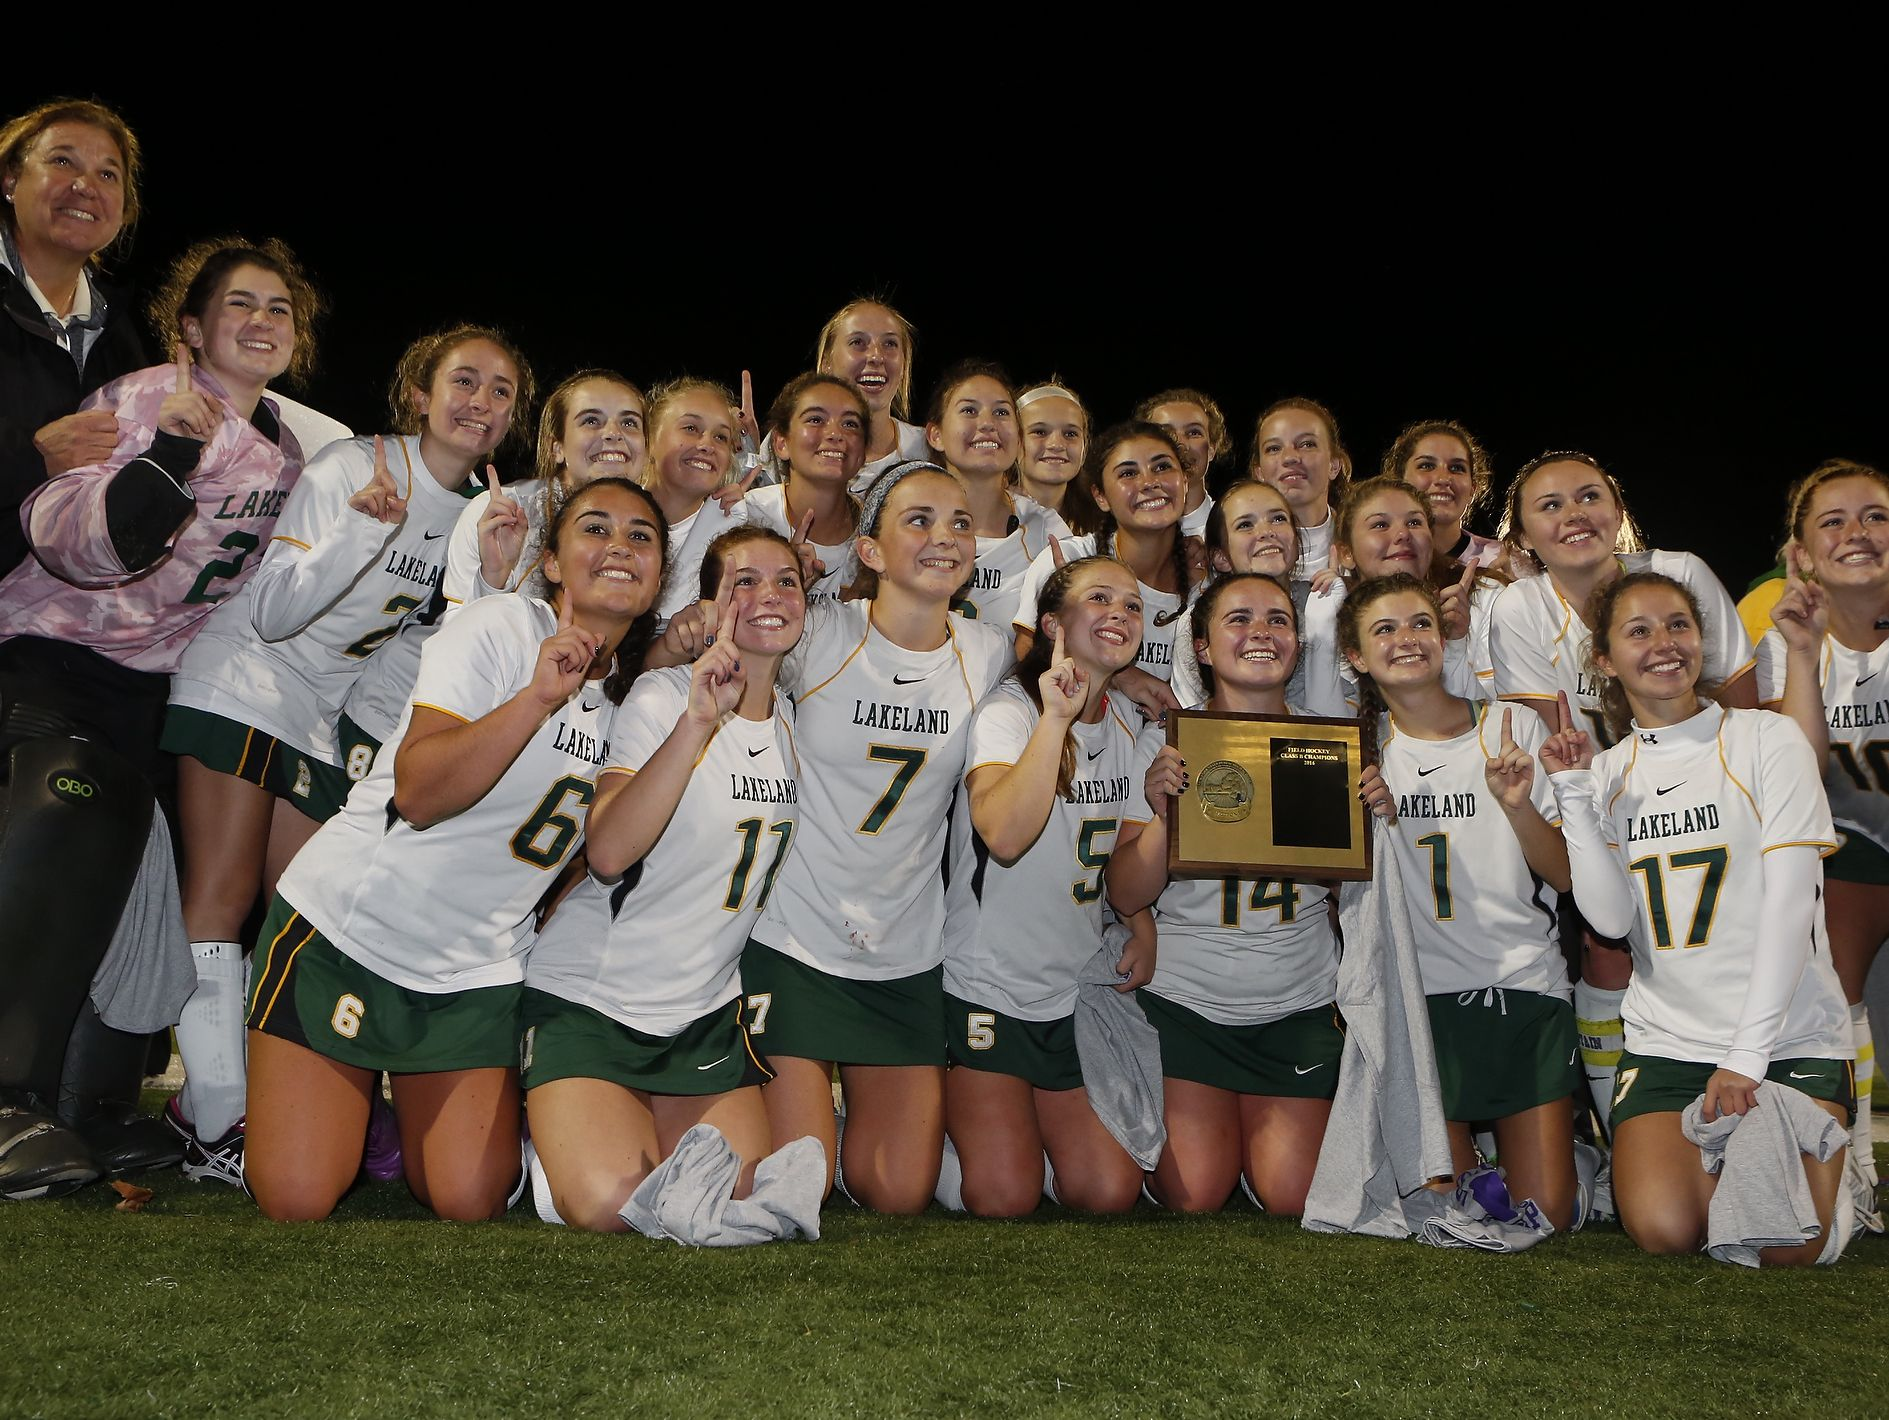 Lakeland players celebrate their 4-1 win over Rye in the Class B field hockey section finals at Brewster High School on Tuesday, November 1, 2016.